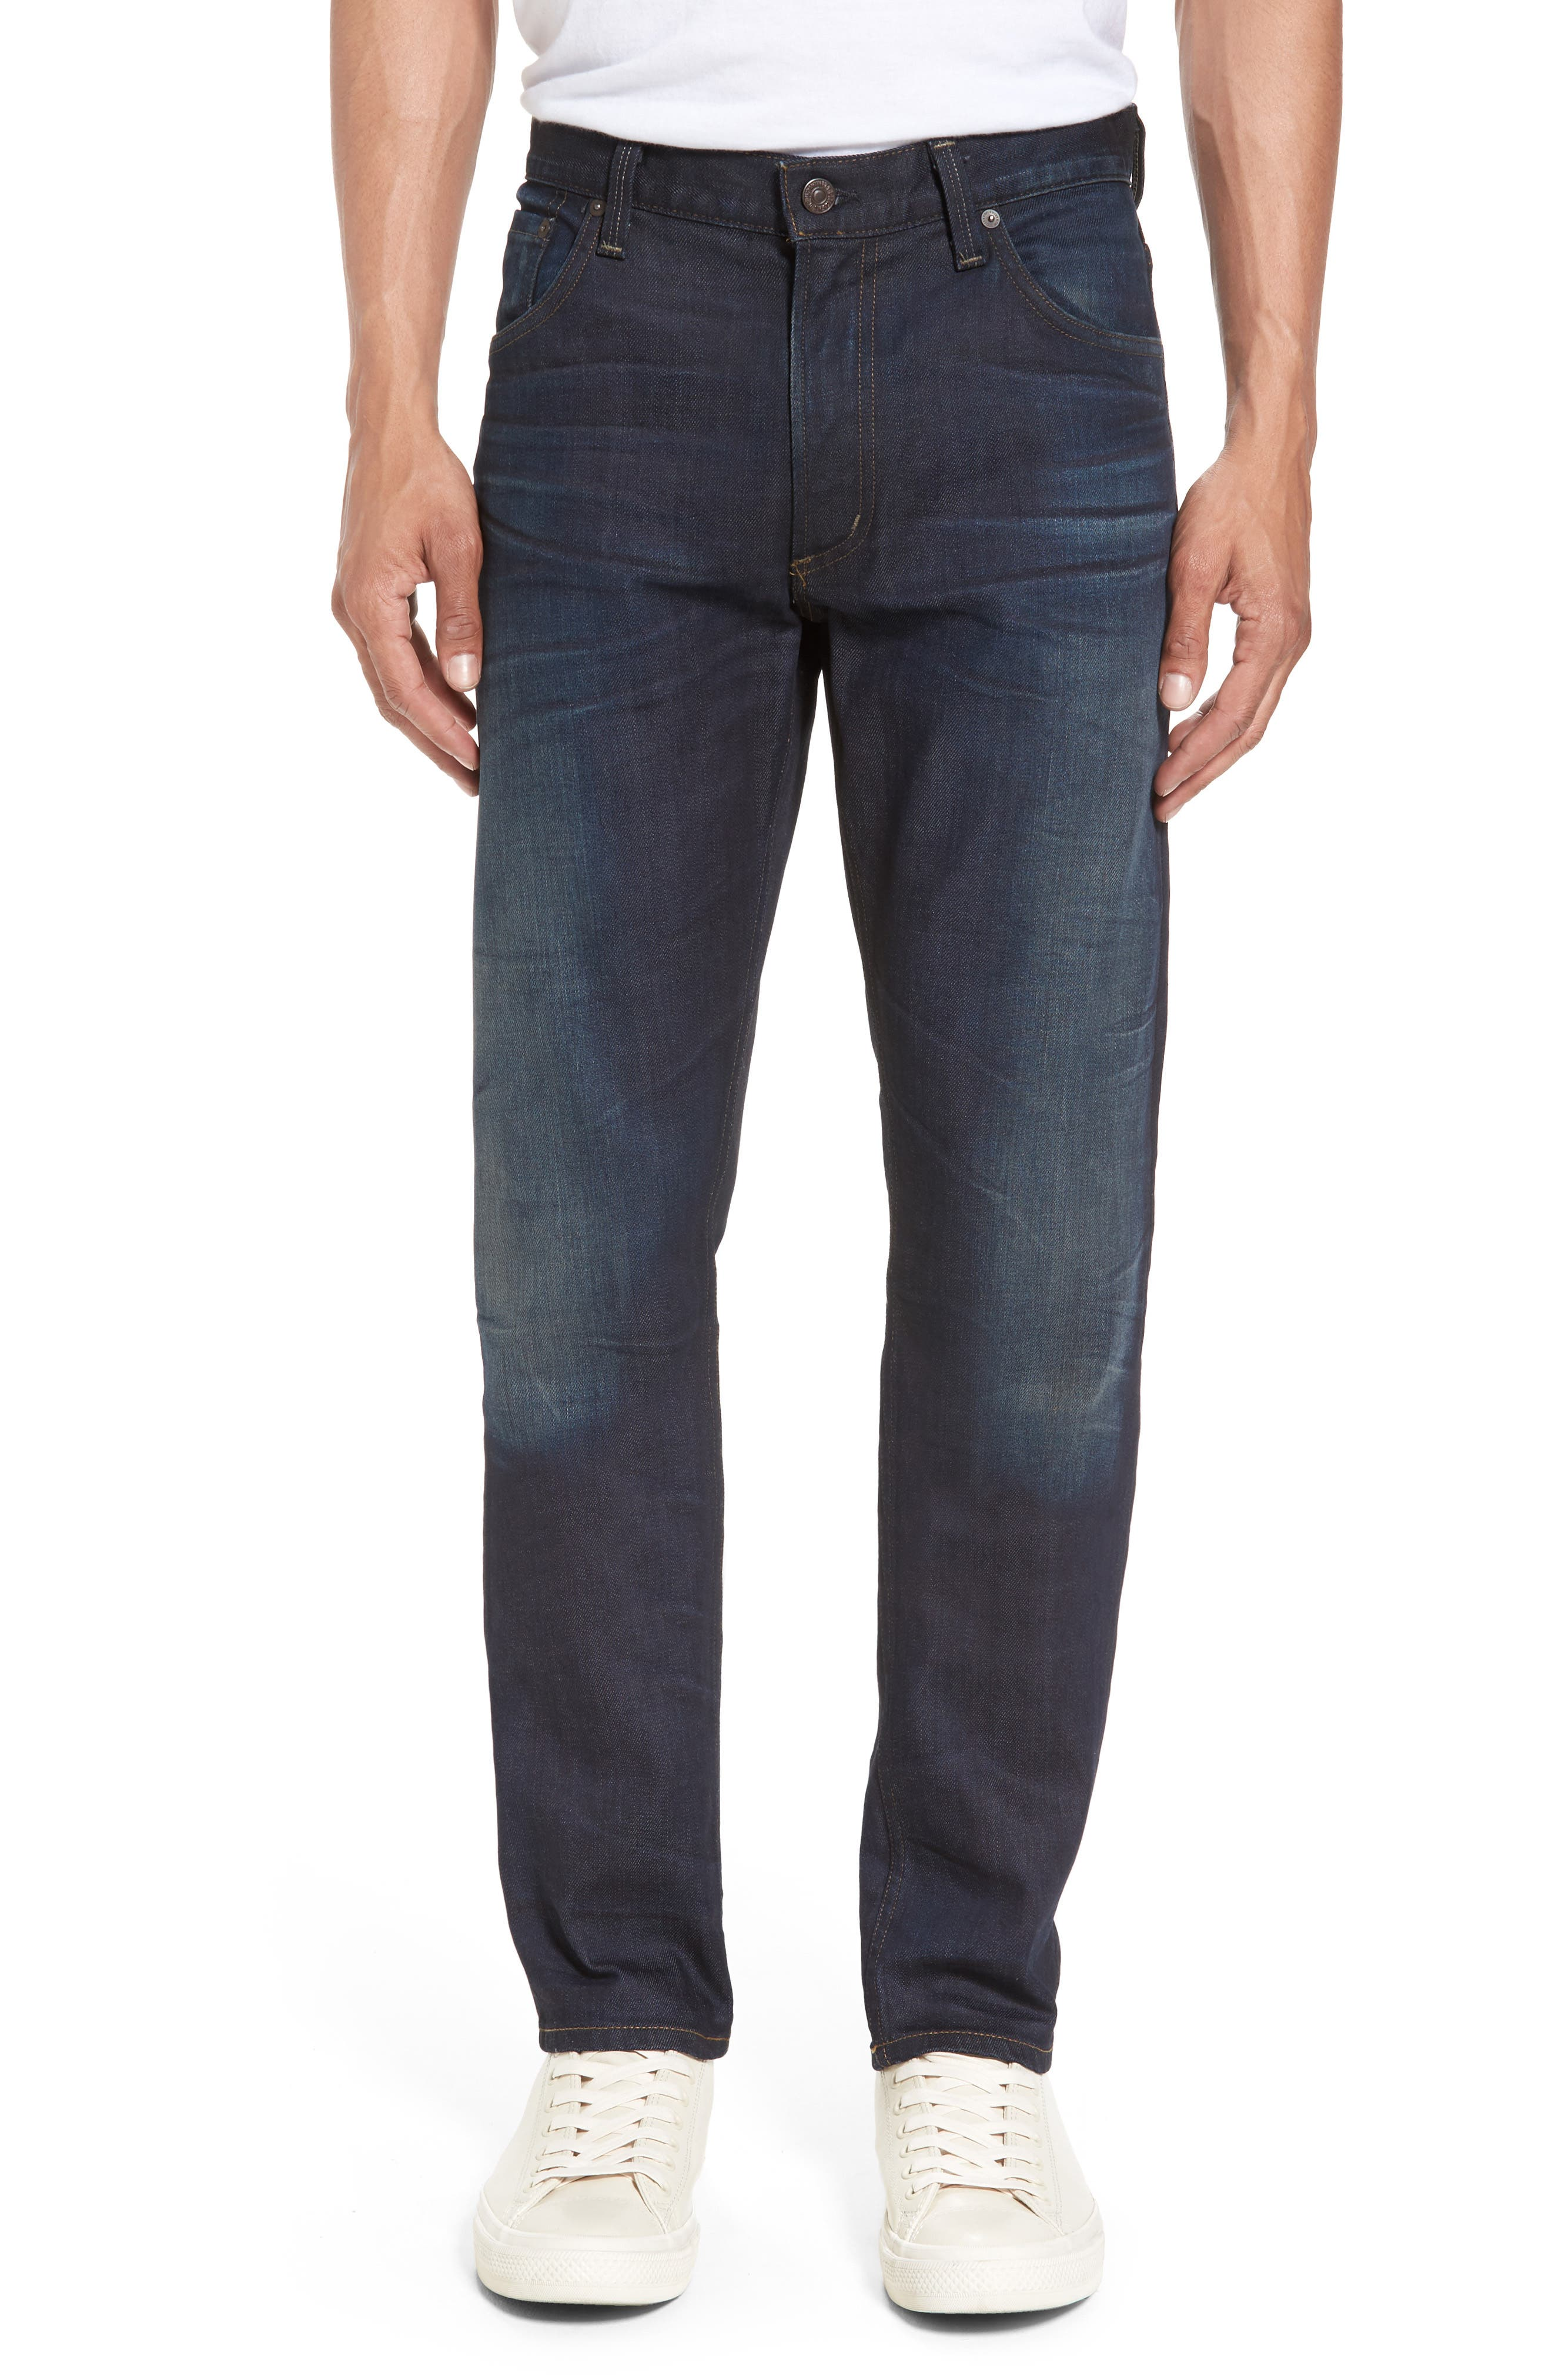 Alternate Image 1 Selected - Citizens of Humanity Bowery Slim Fit Jeans (Huron) (Tall)